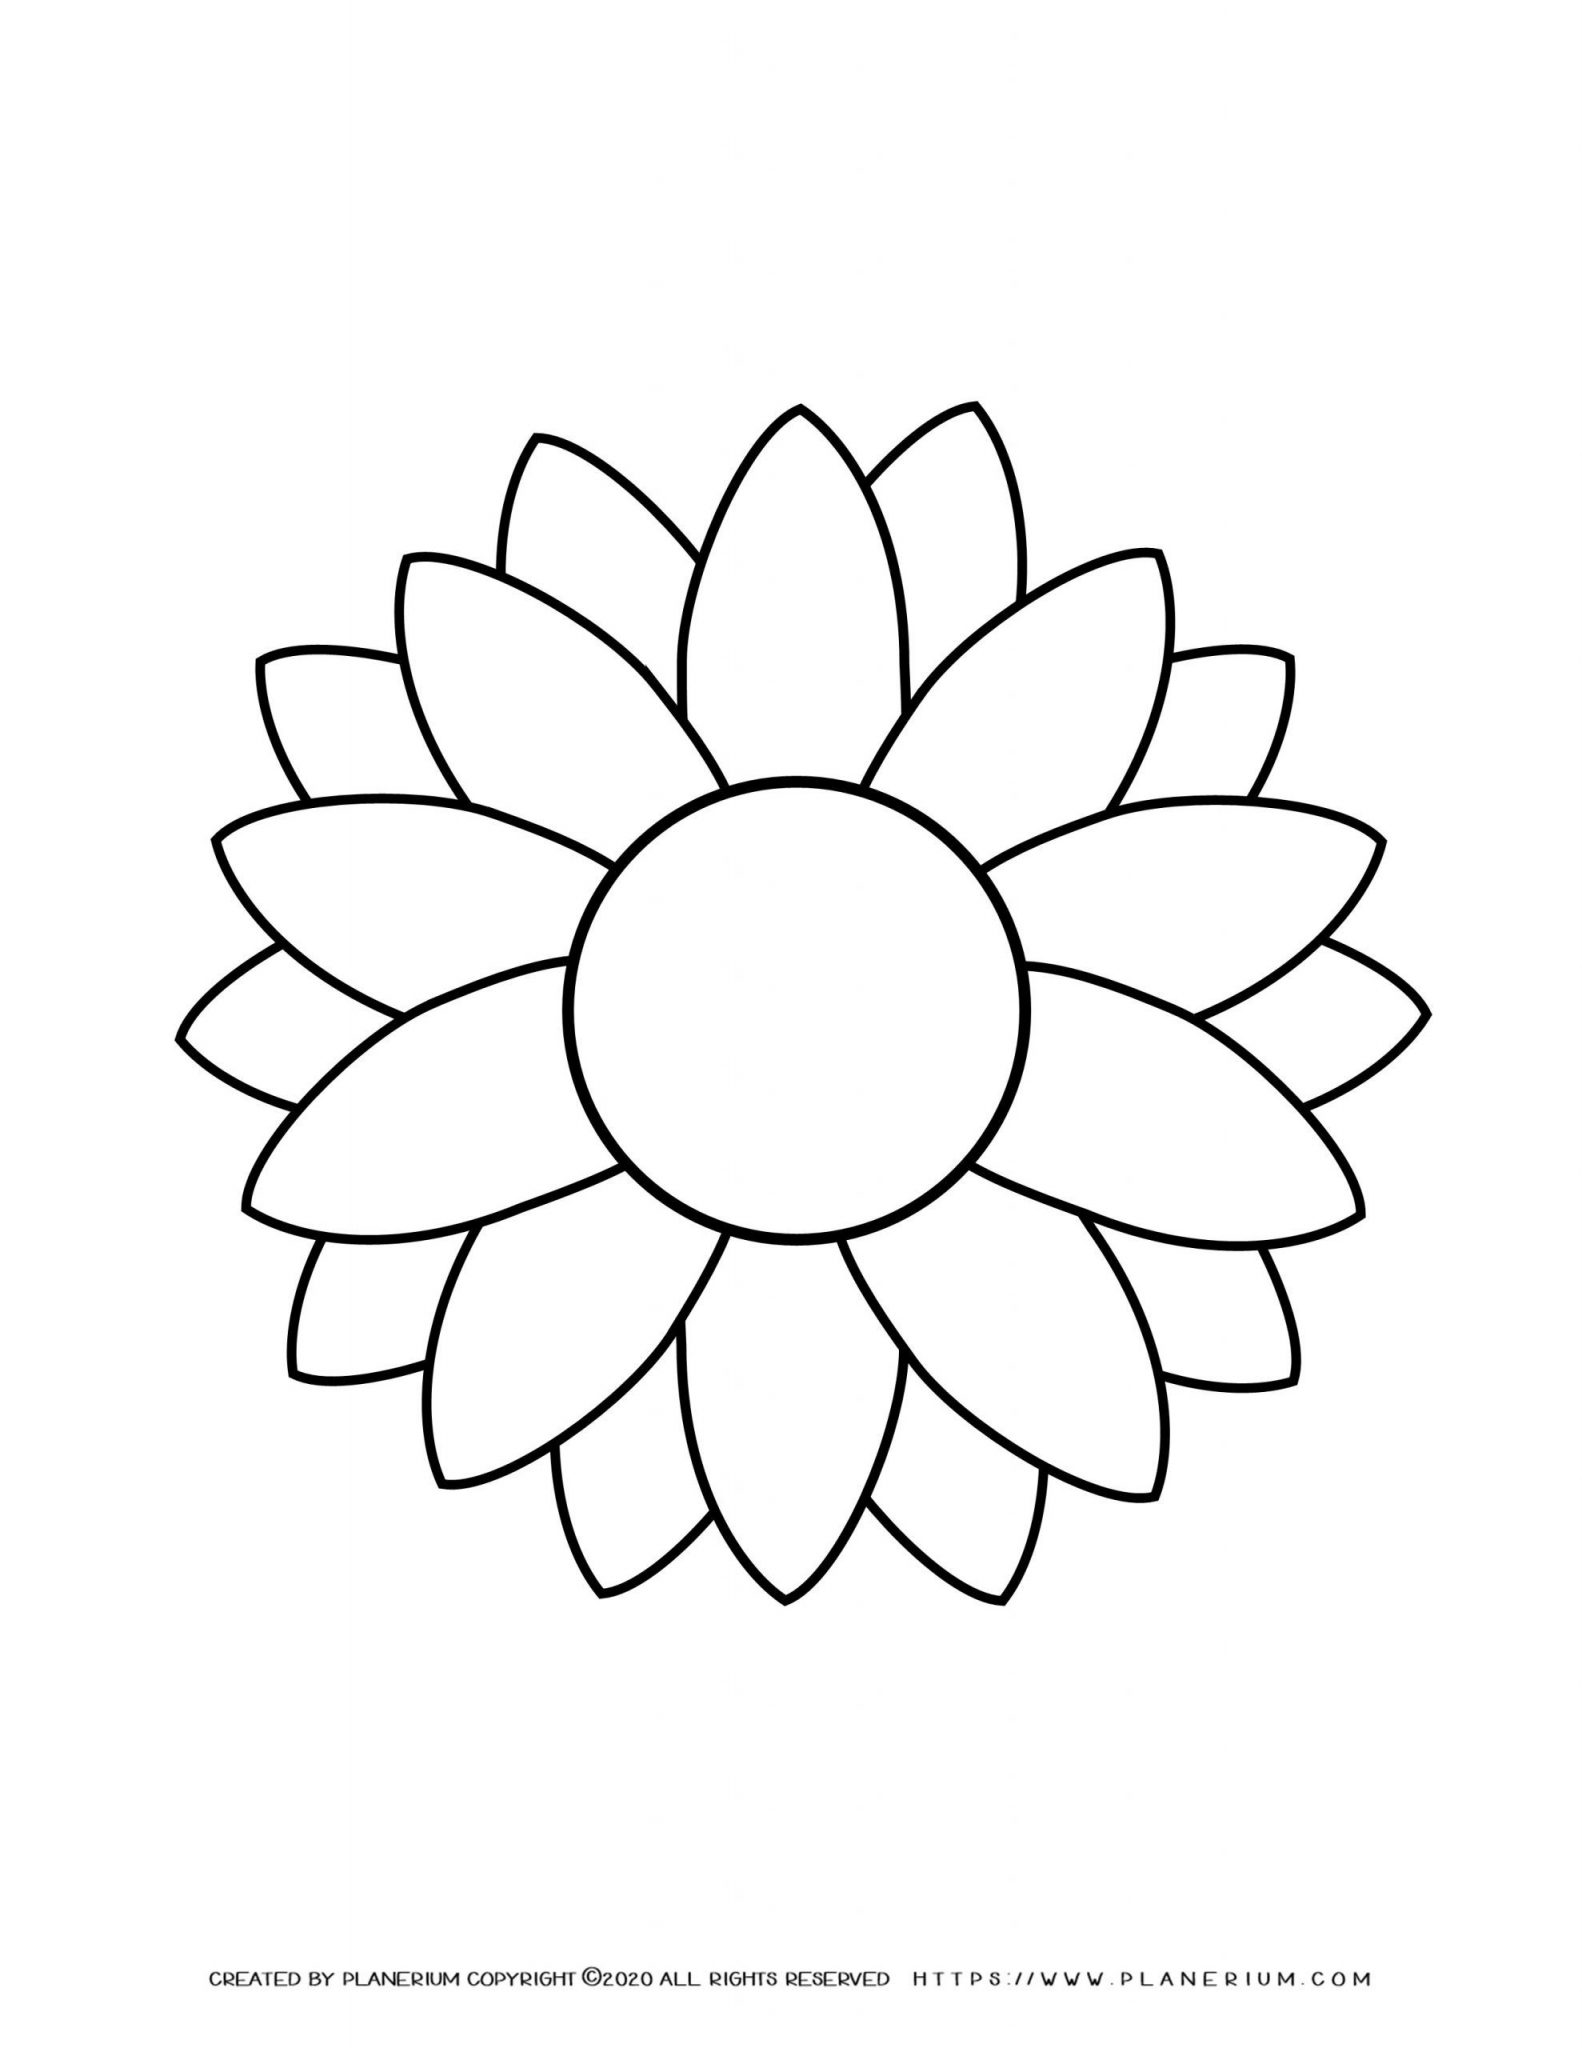 Summer - Coloring Page - Sunflower